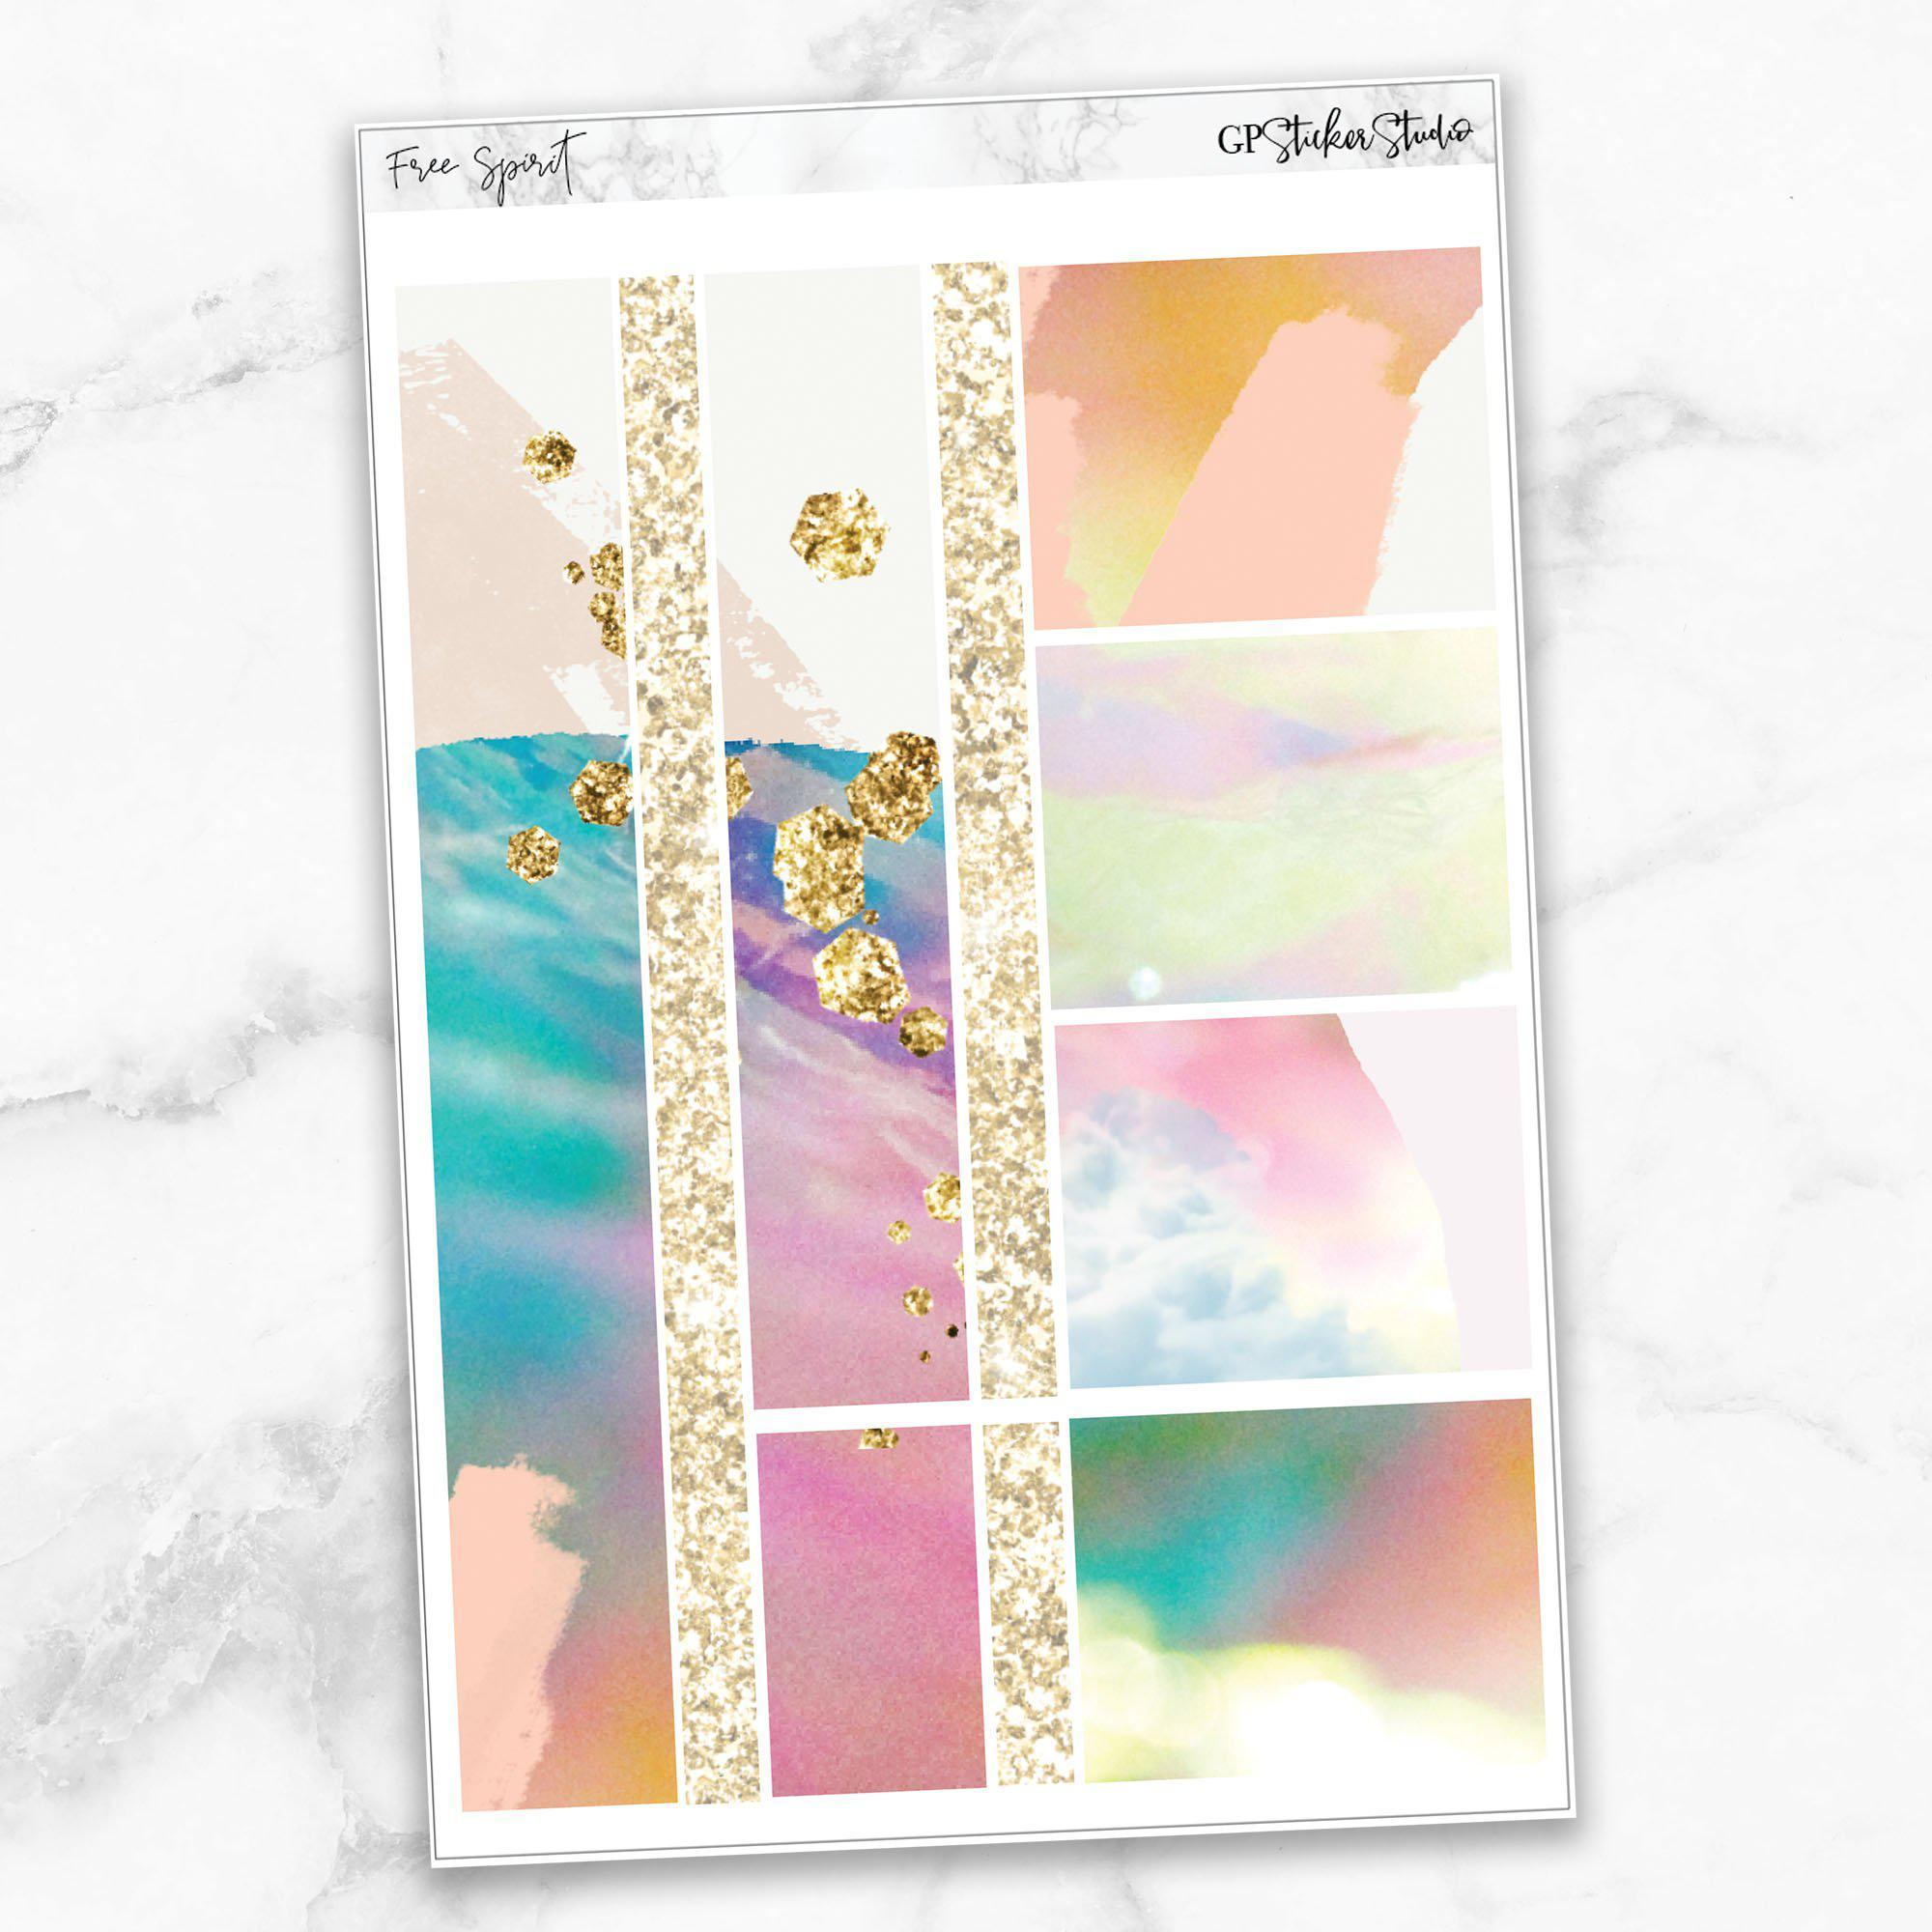 FREE SPIRIT Washi Sheet Stickers-The GP Studio